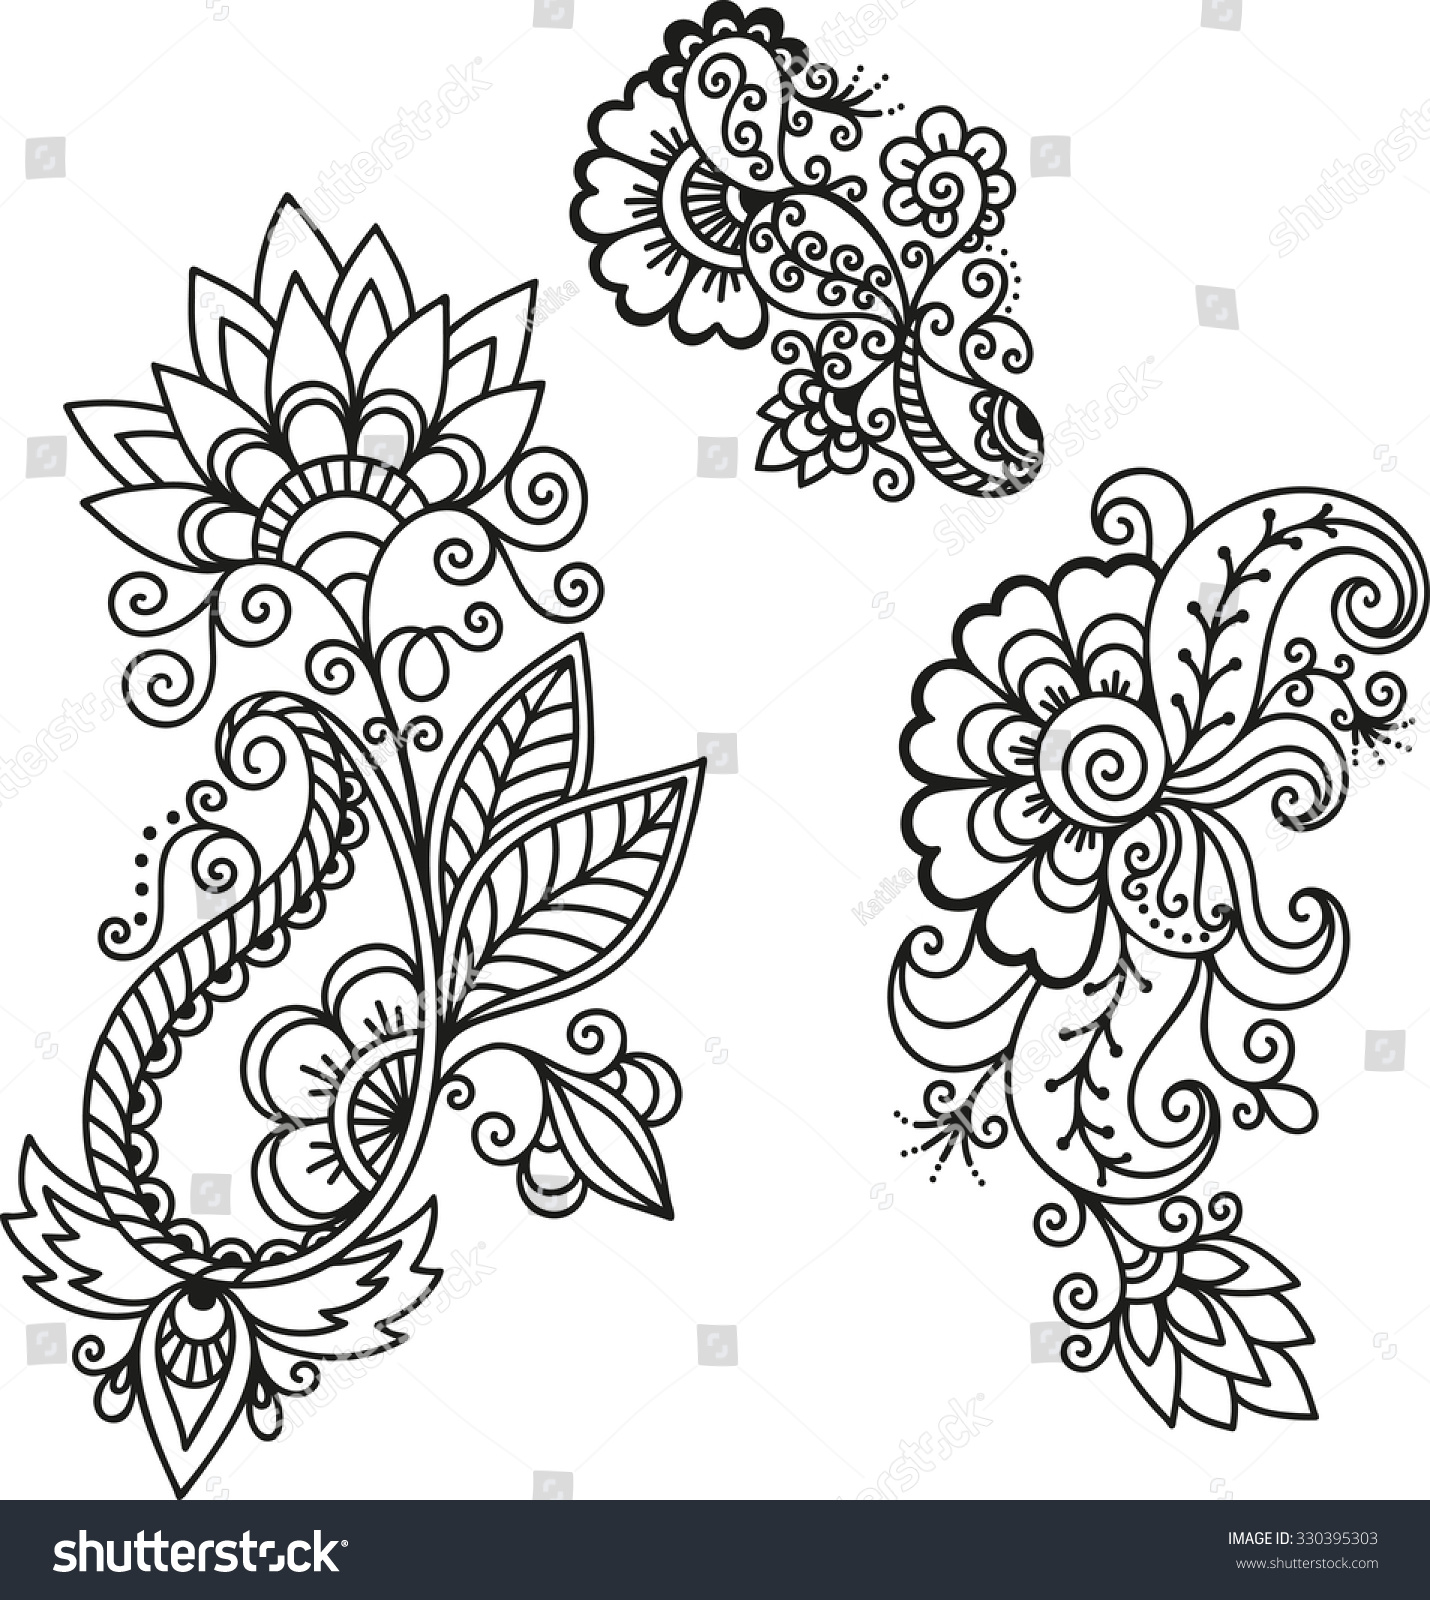 henna tattoo flower templatemehndi stock vector 330395303 shutterstock. Black Bedroom Furniture Sets. Home Design Ideas